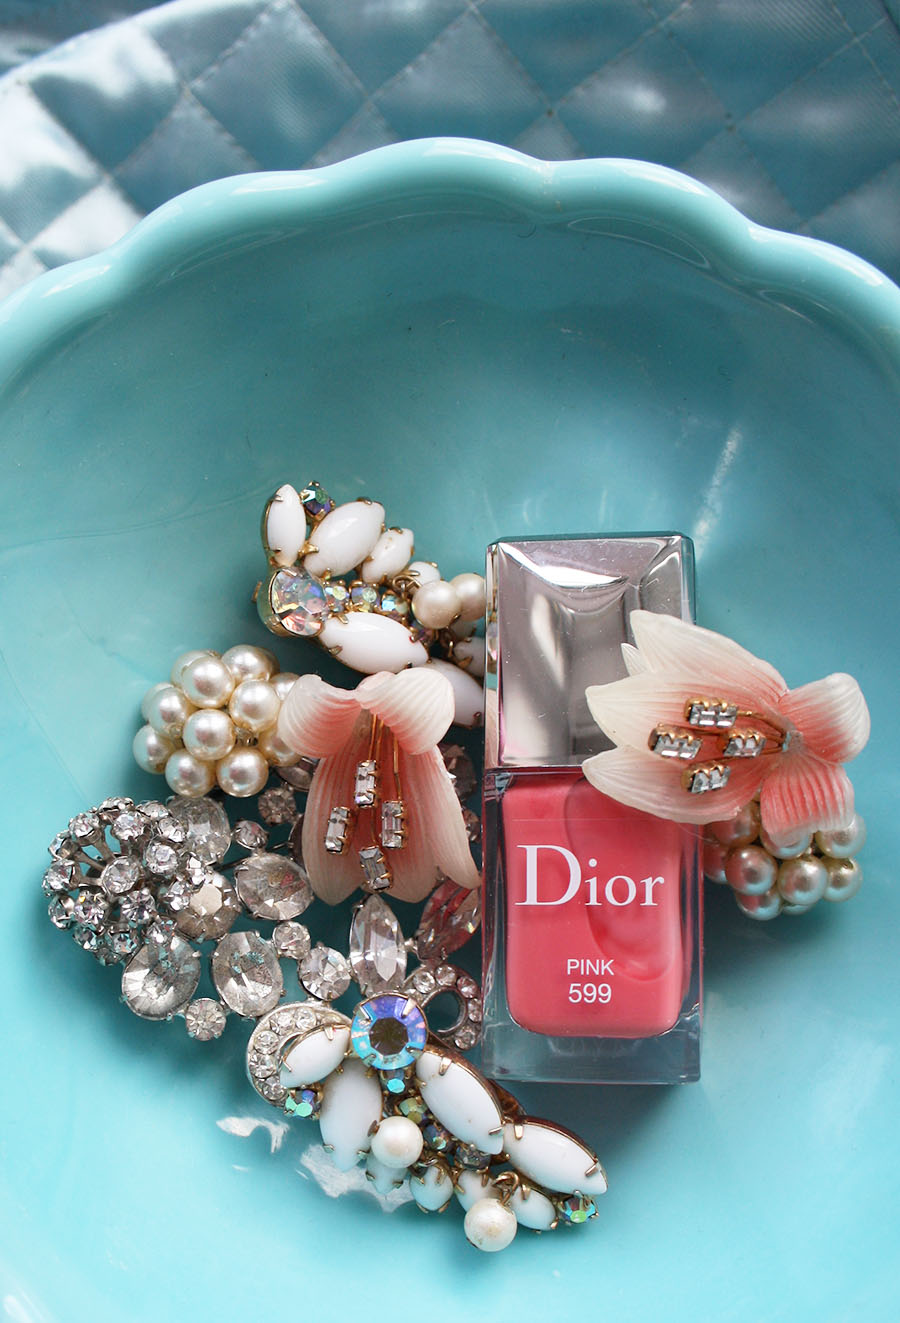 dior_3_stormsmagasin